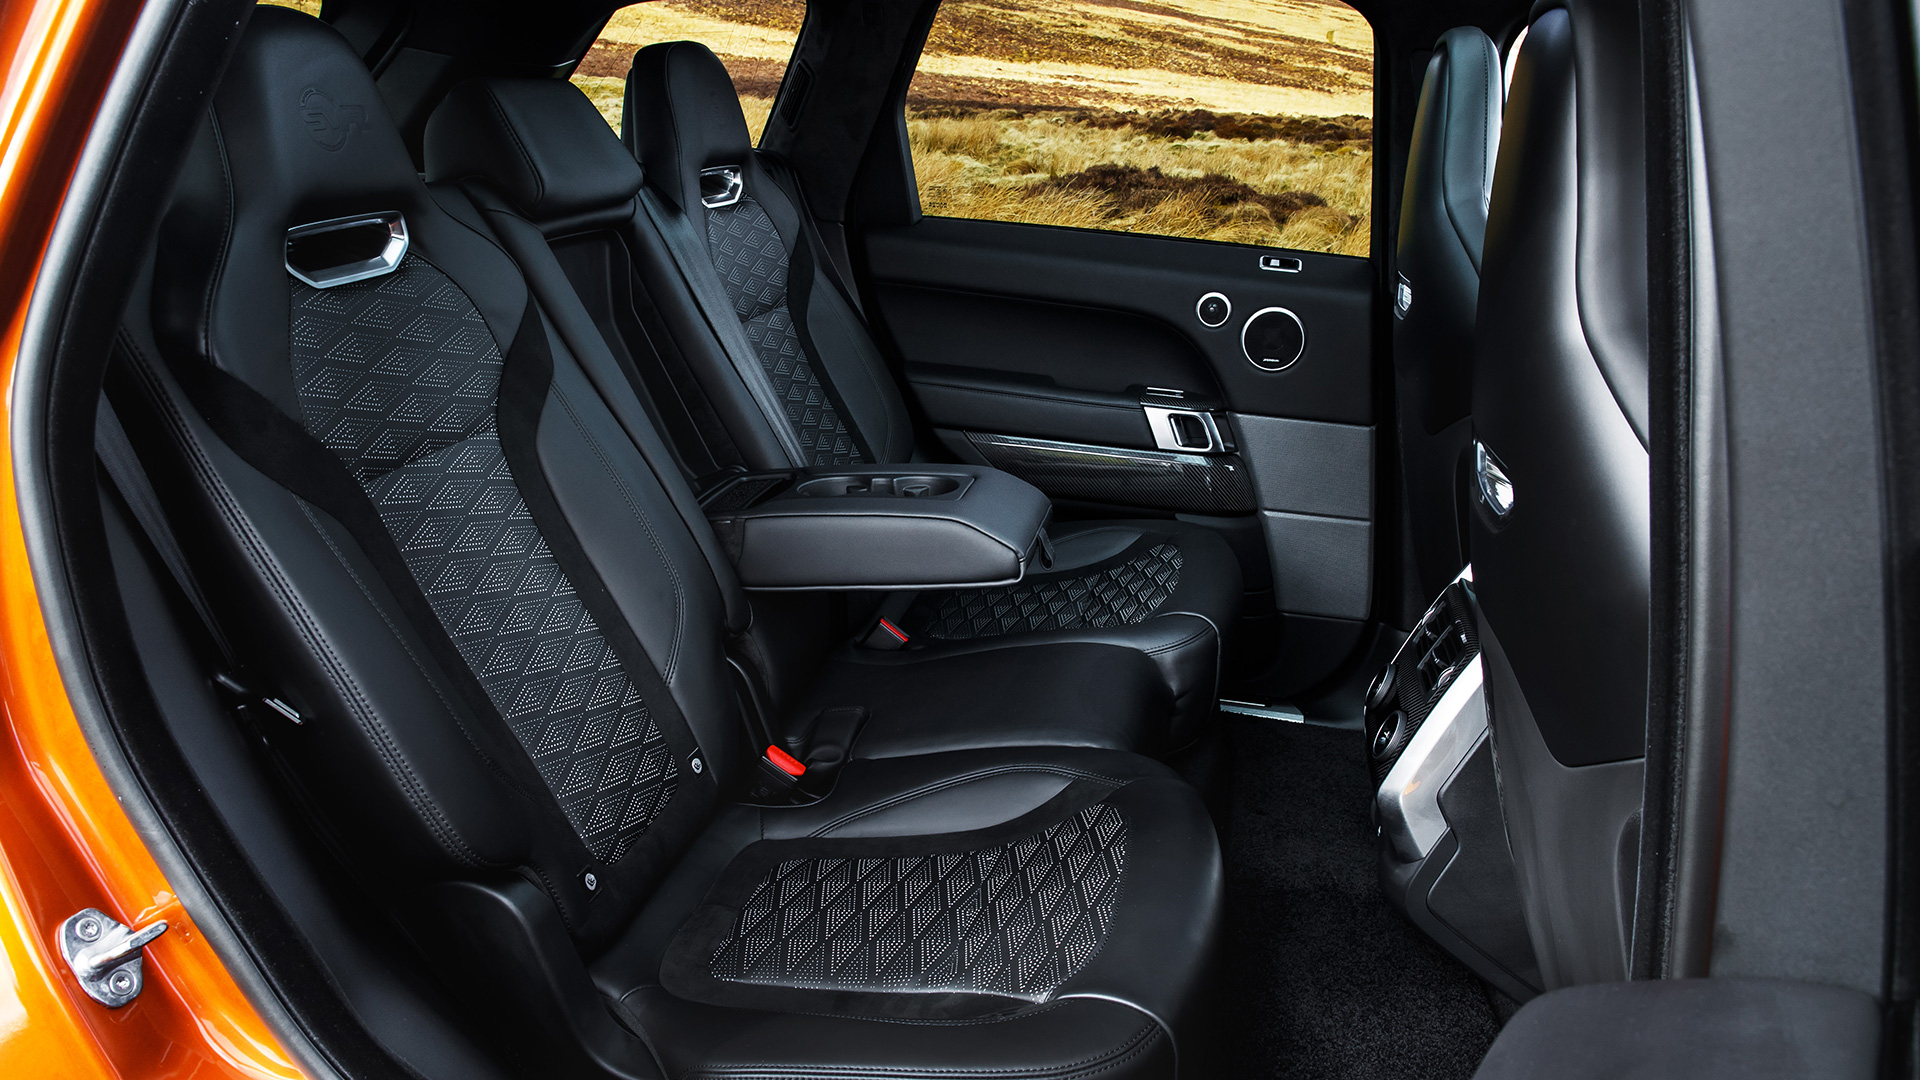 Land Rover Range Sport 2018 Svr Interior Car Photos Overdrive Seating Space